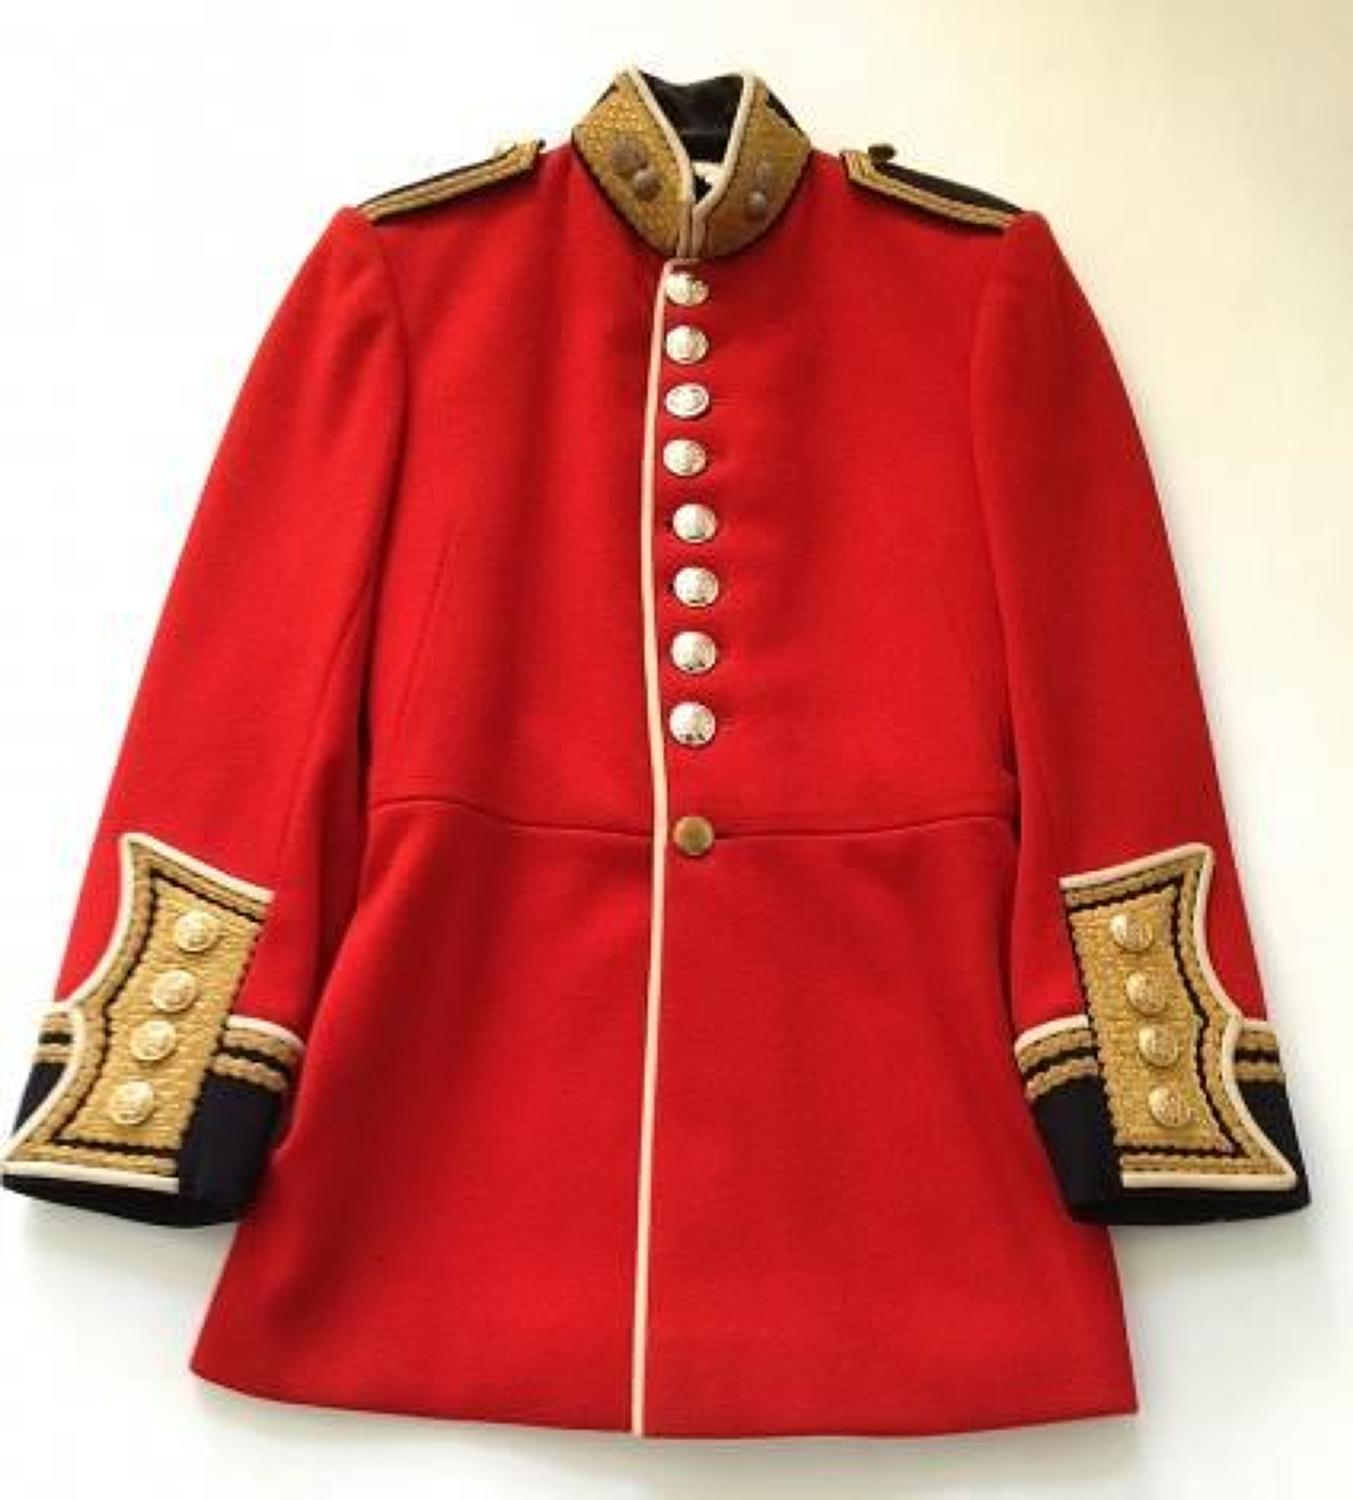 Grenadier Guards EIIR Officer's scarlet tunic.